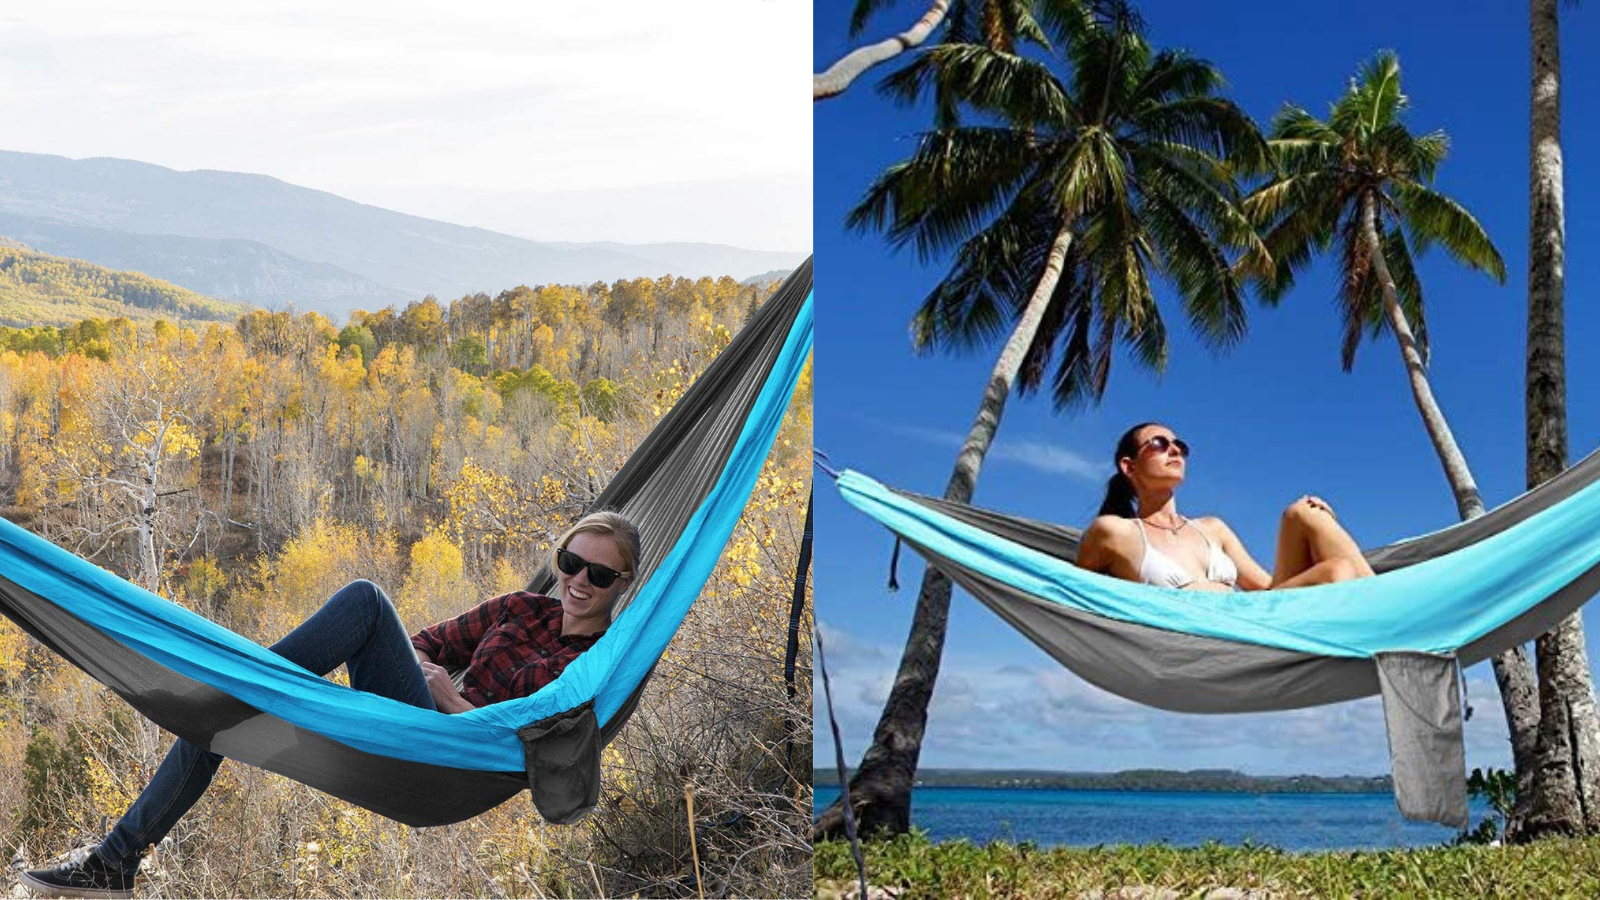 44 perfect gifts for people who love to travel